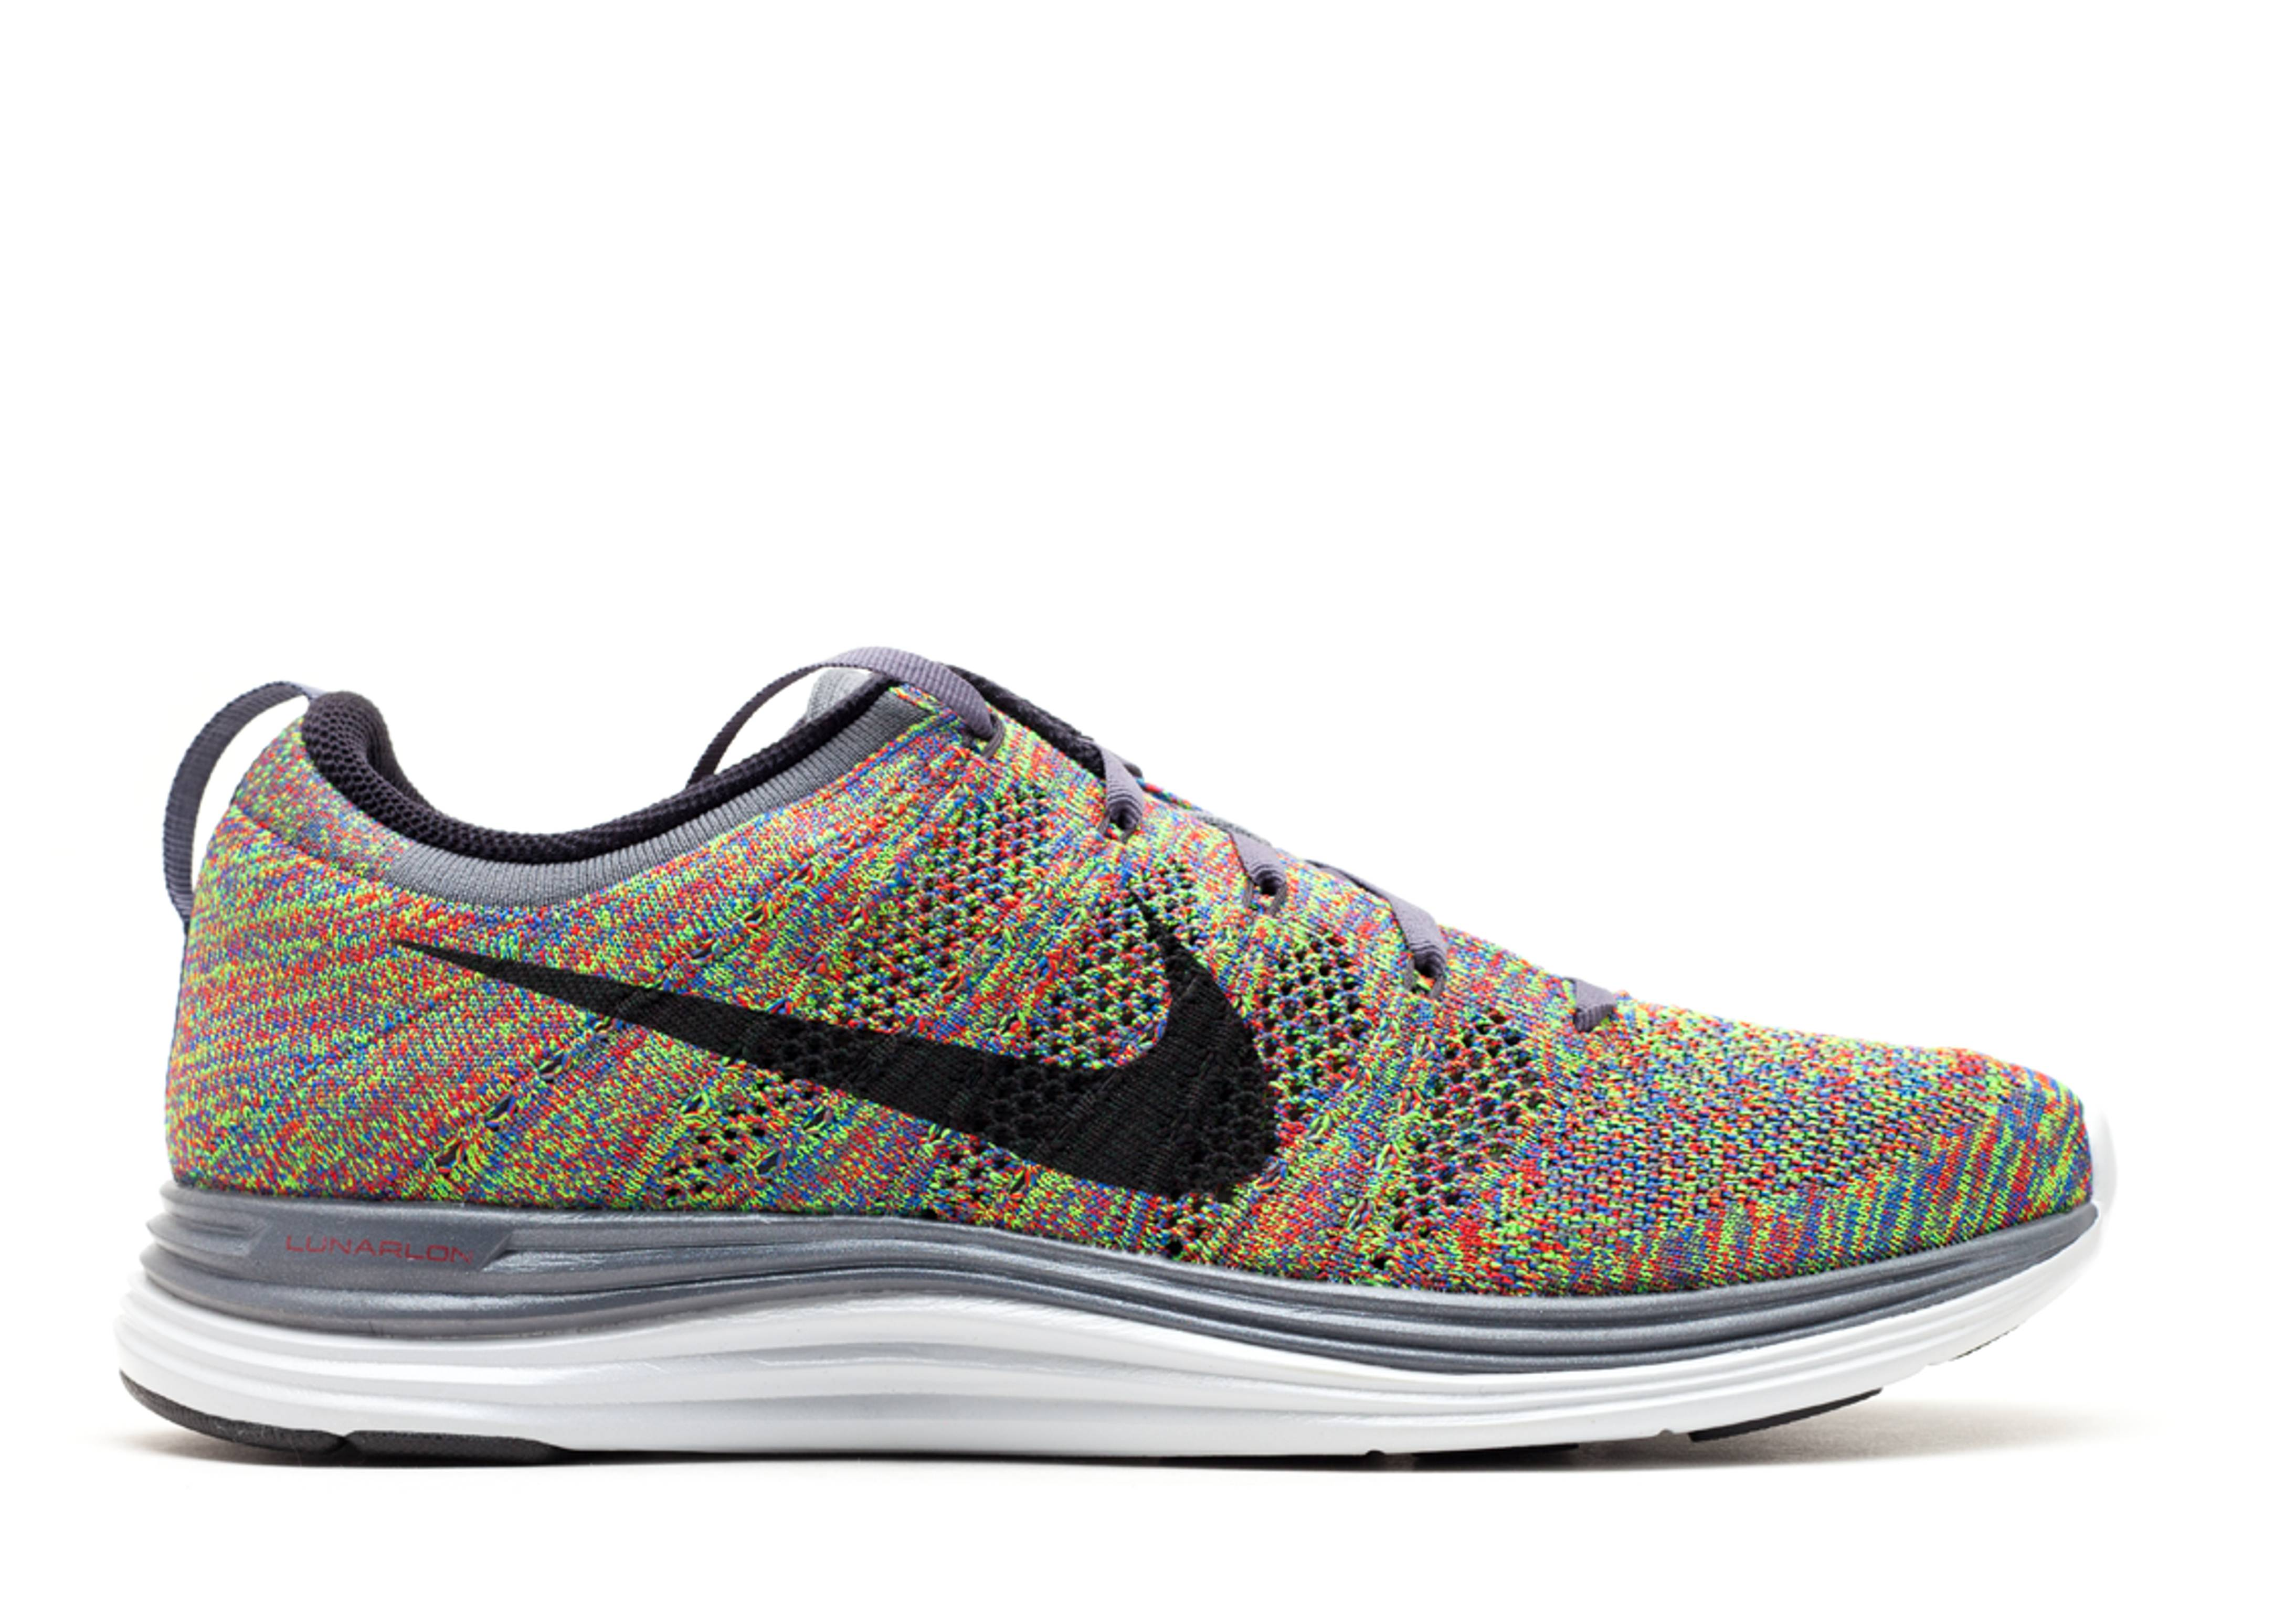 13 Reasons to/NOT to Buy Nike LunarEpic Flyknit (August 2017)